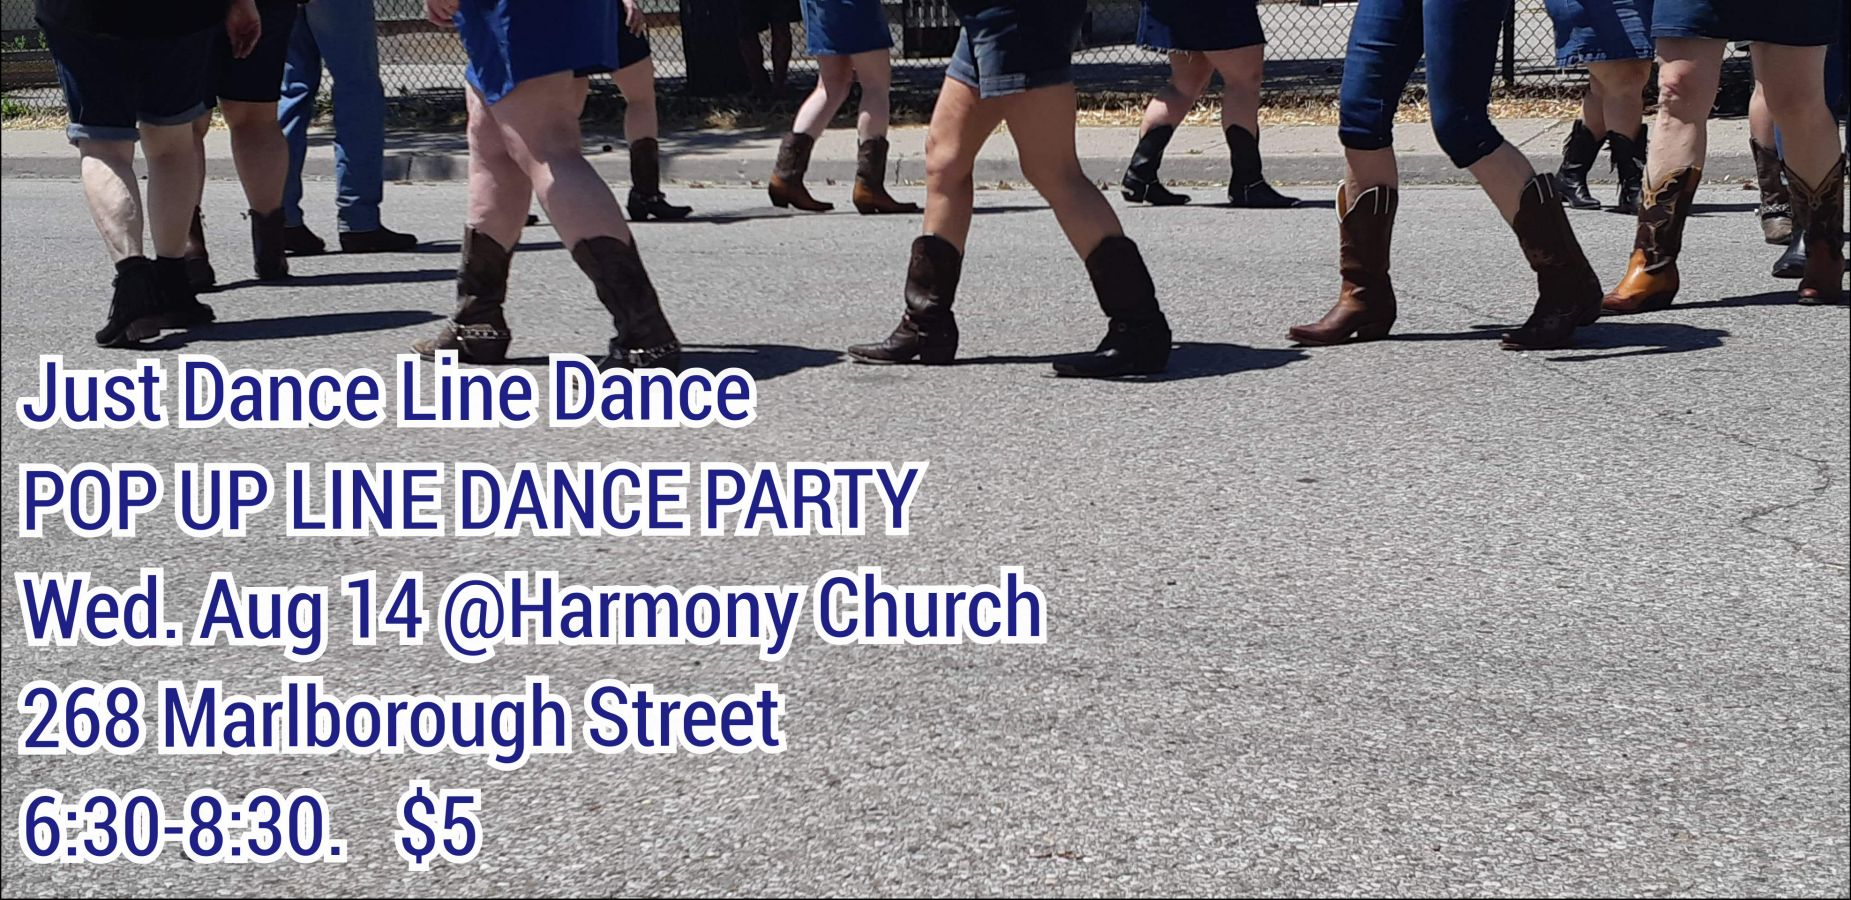 Pop Up Line Dance Party poster